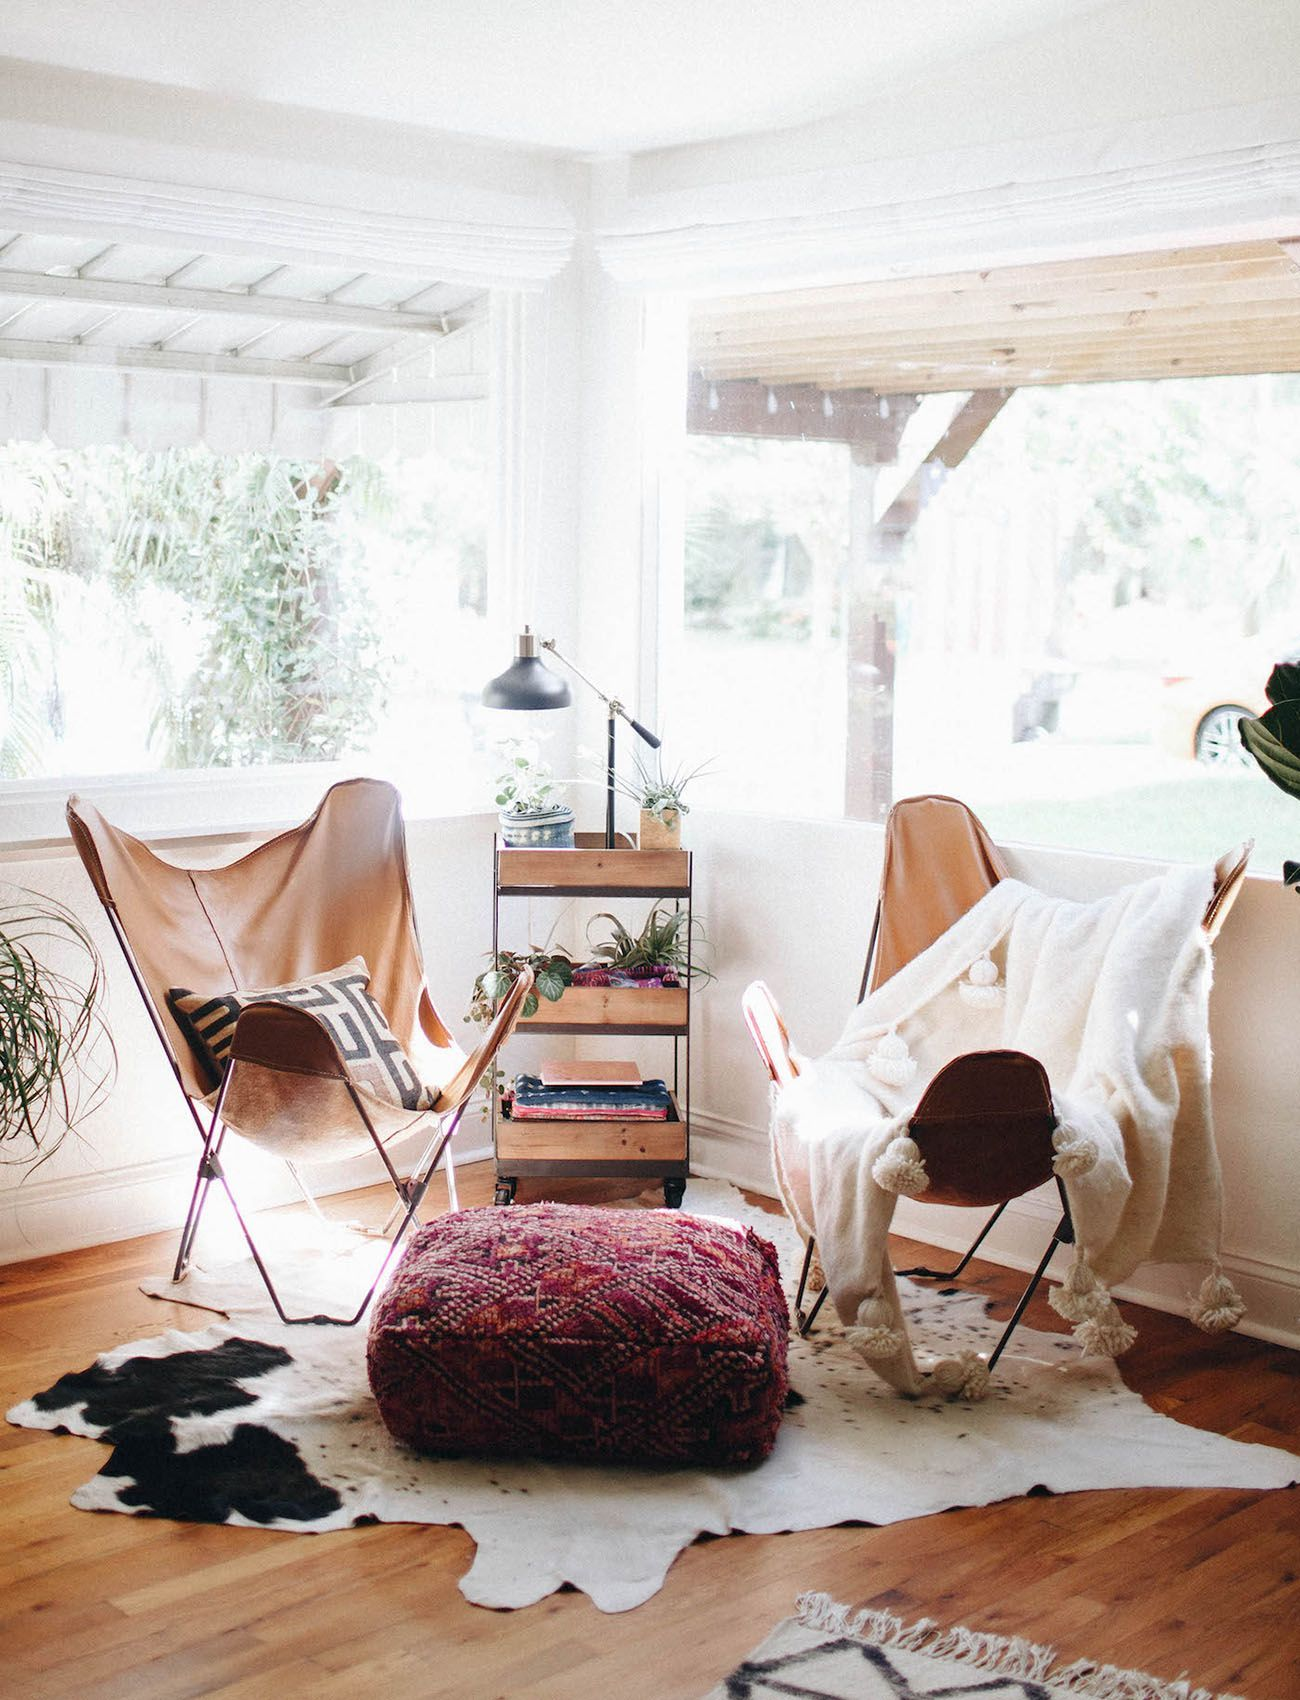 Boho seating - Leather butterfly chairs, a textile pouf ottoman, and fur throws